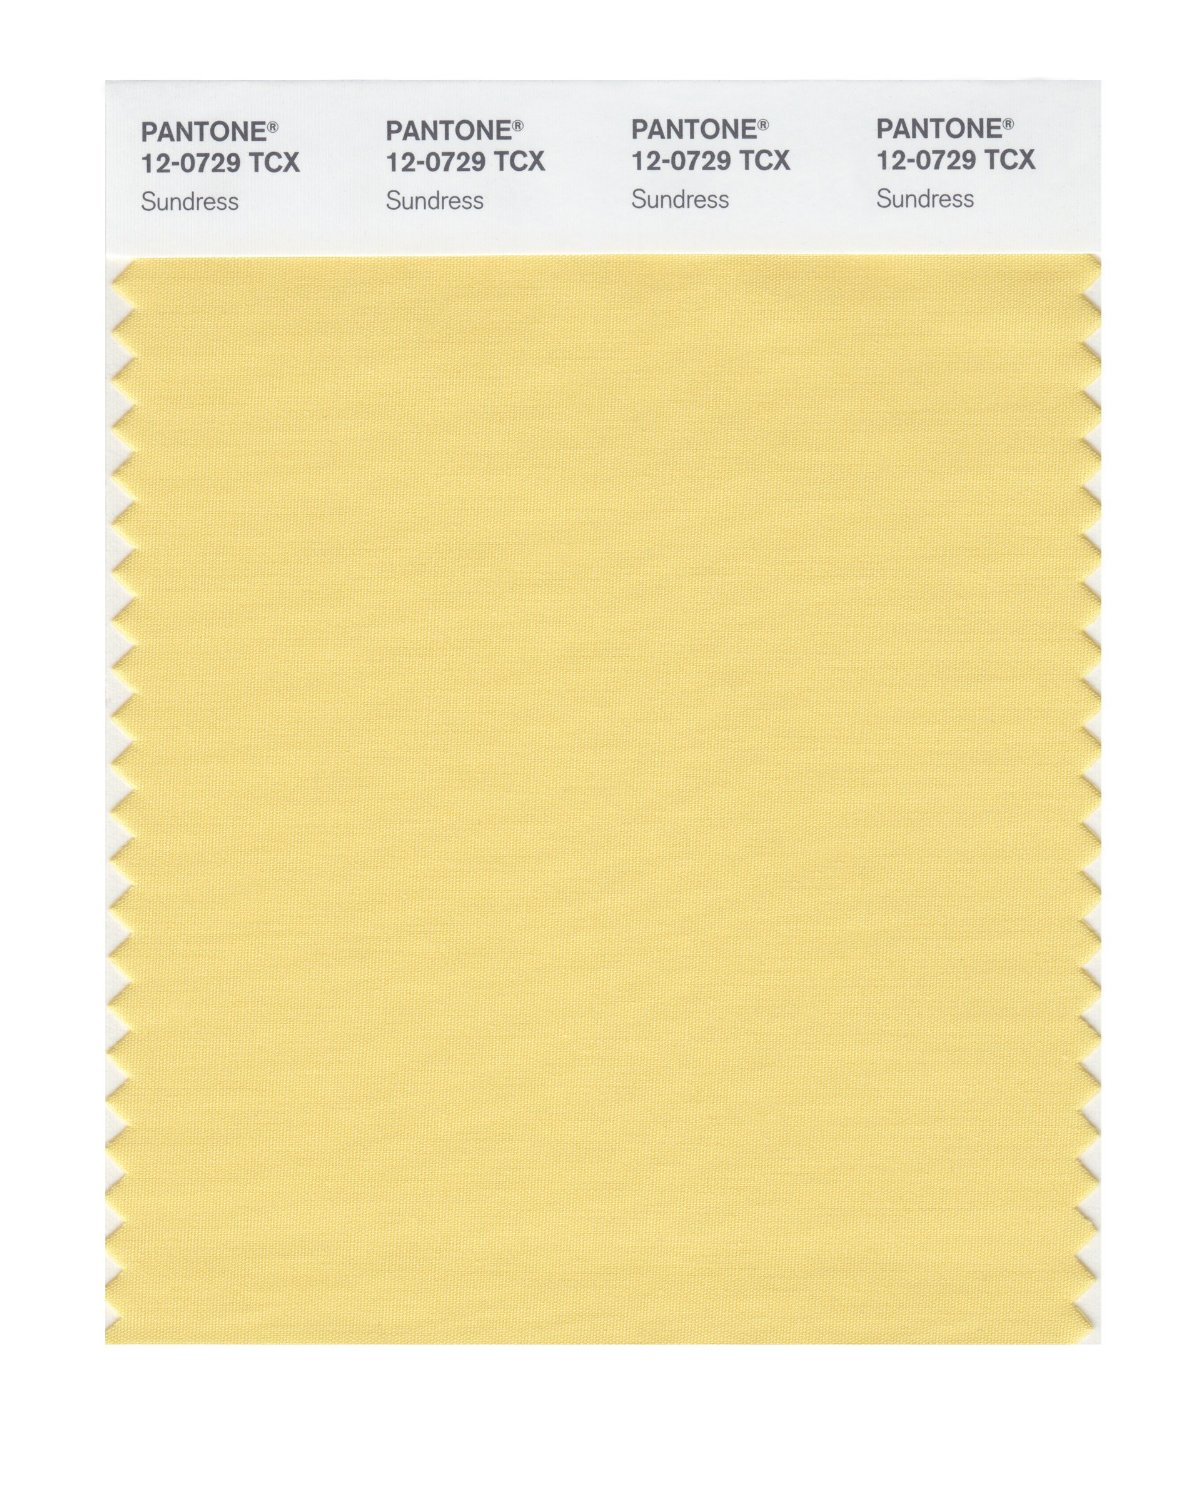 Pantone Smart Swatch 12-0729 Sundress